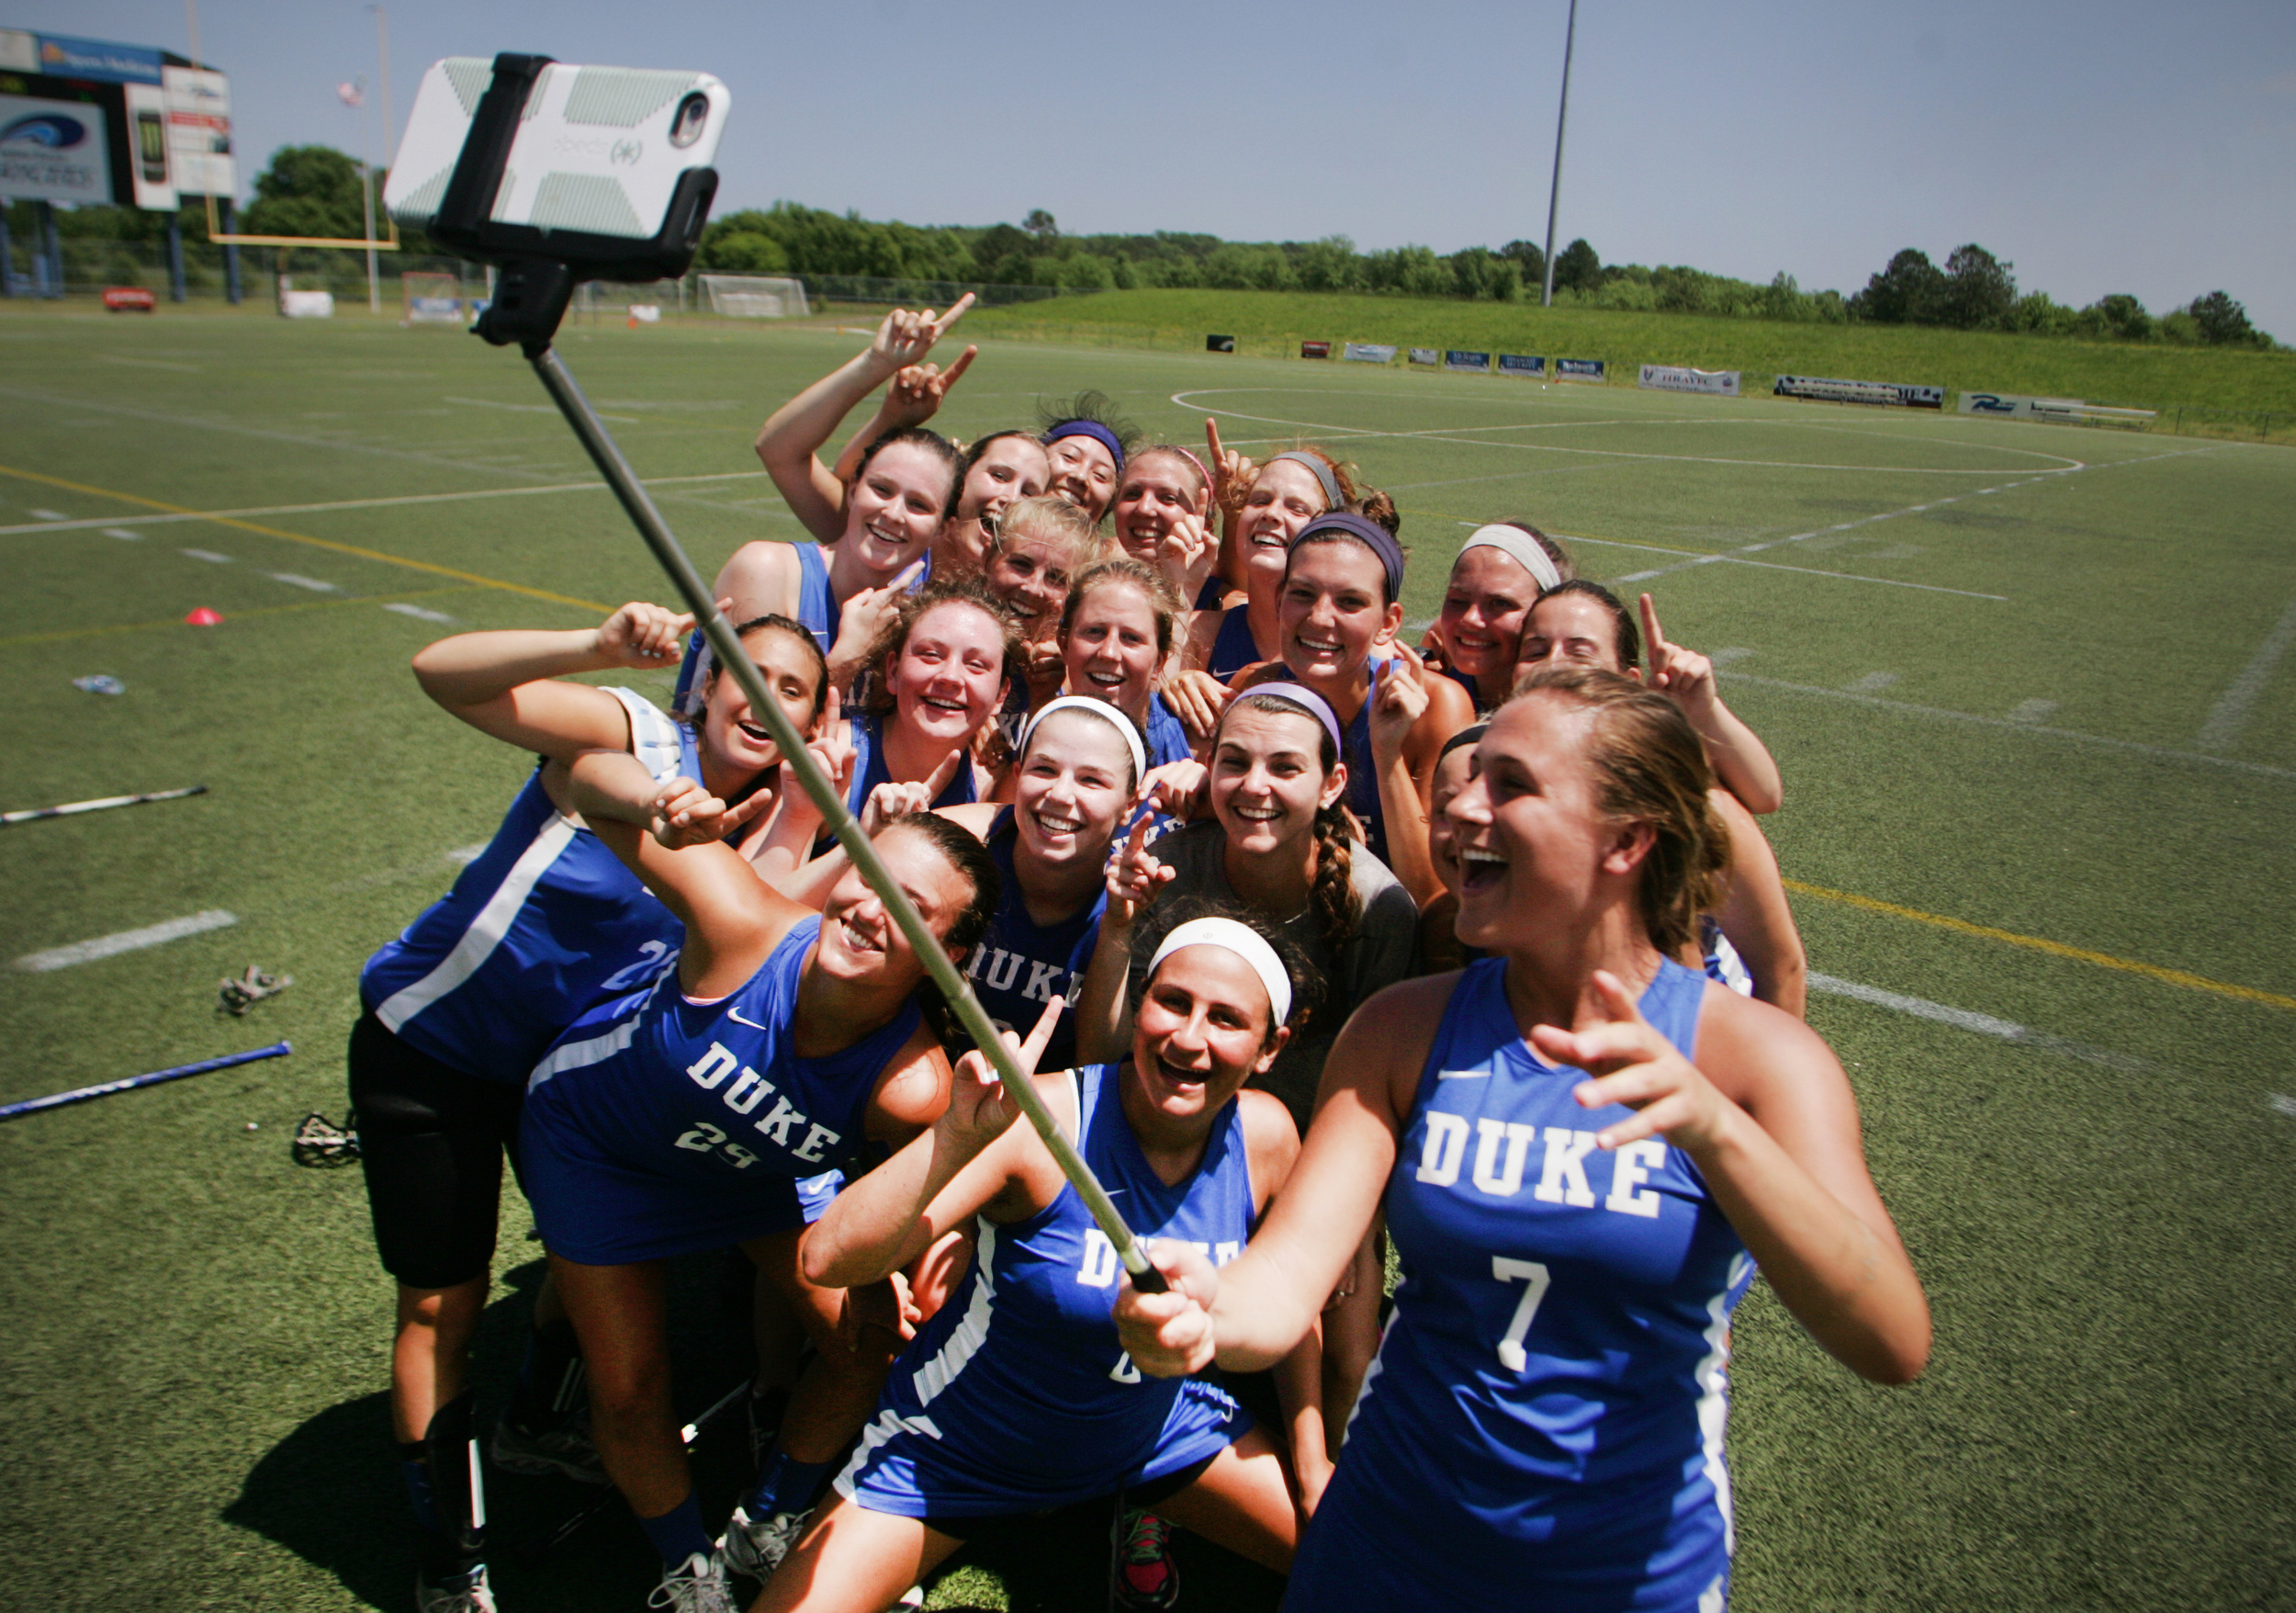 Duke's Abby Ranier (7) takes a team selfie after beating Utah 11-3 to win the National Lacrosse championship, Saturday, May 9, 2015 at the Sportsplex in Virginia Beach.